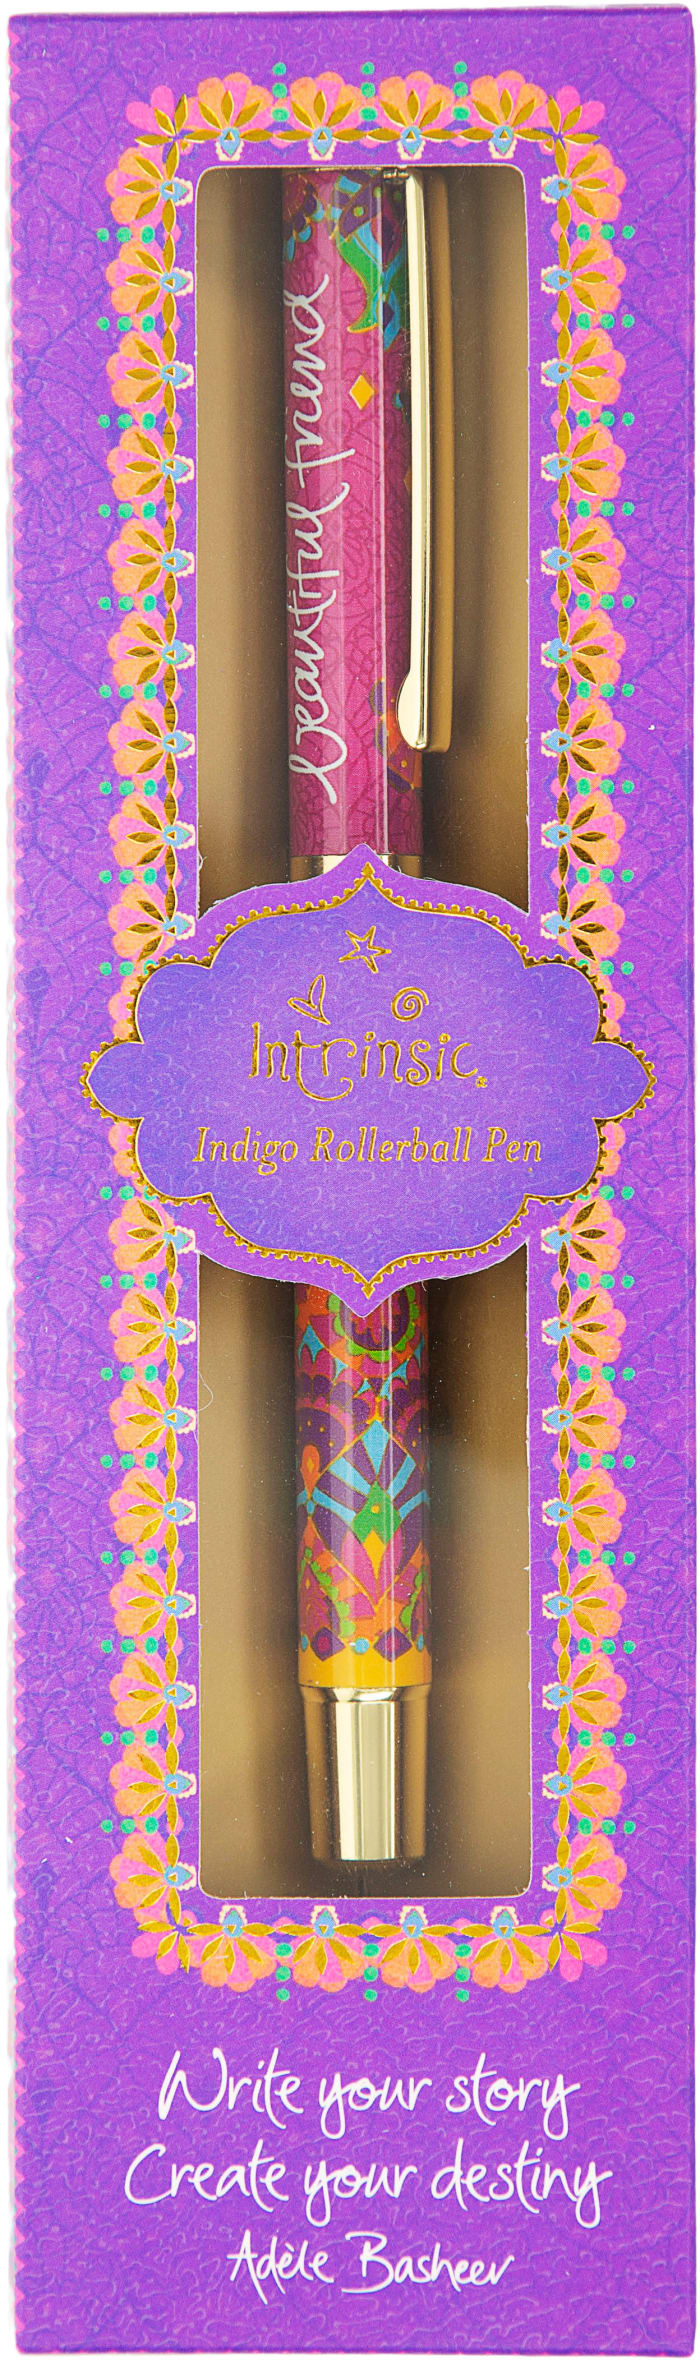 Beautiful Friend - Boxed Gift Pen with Indigo (Purple) Ink